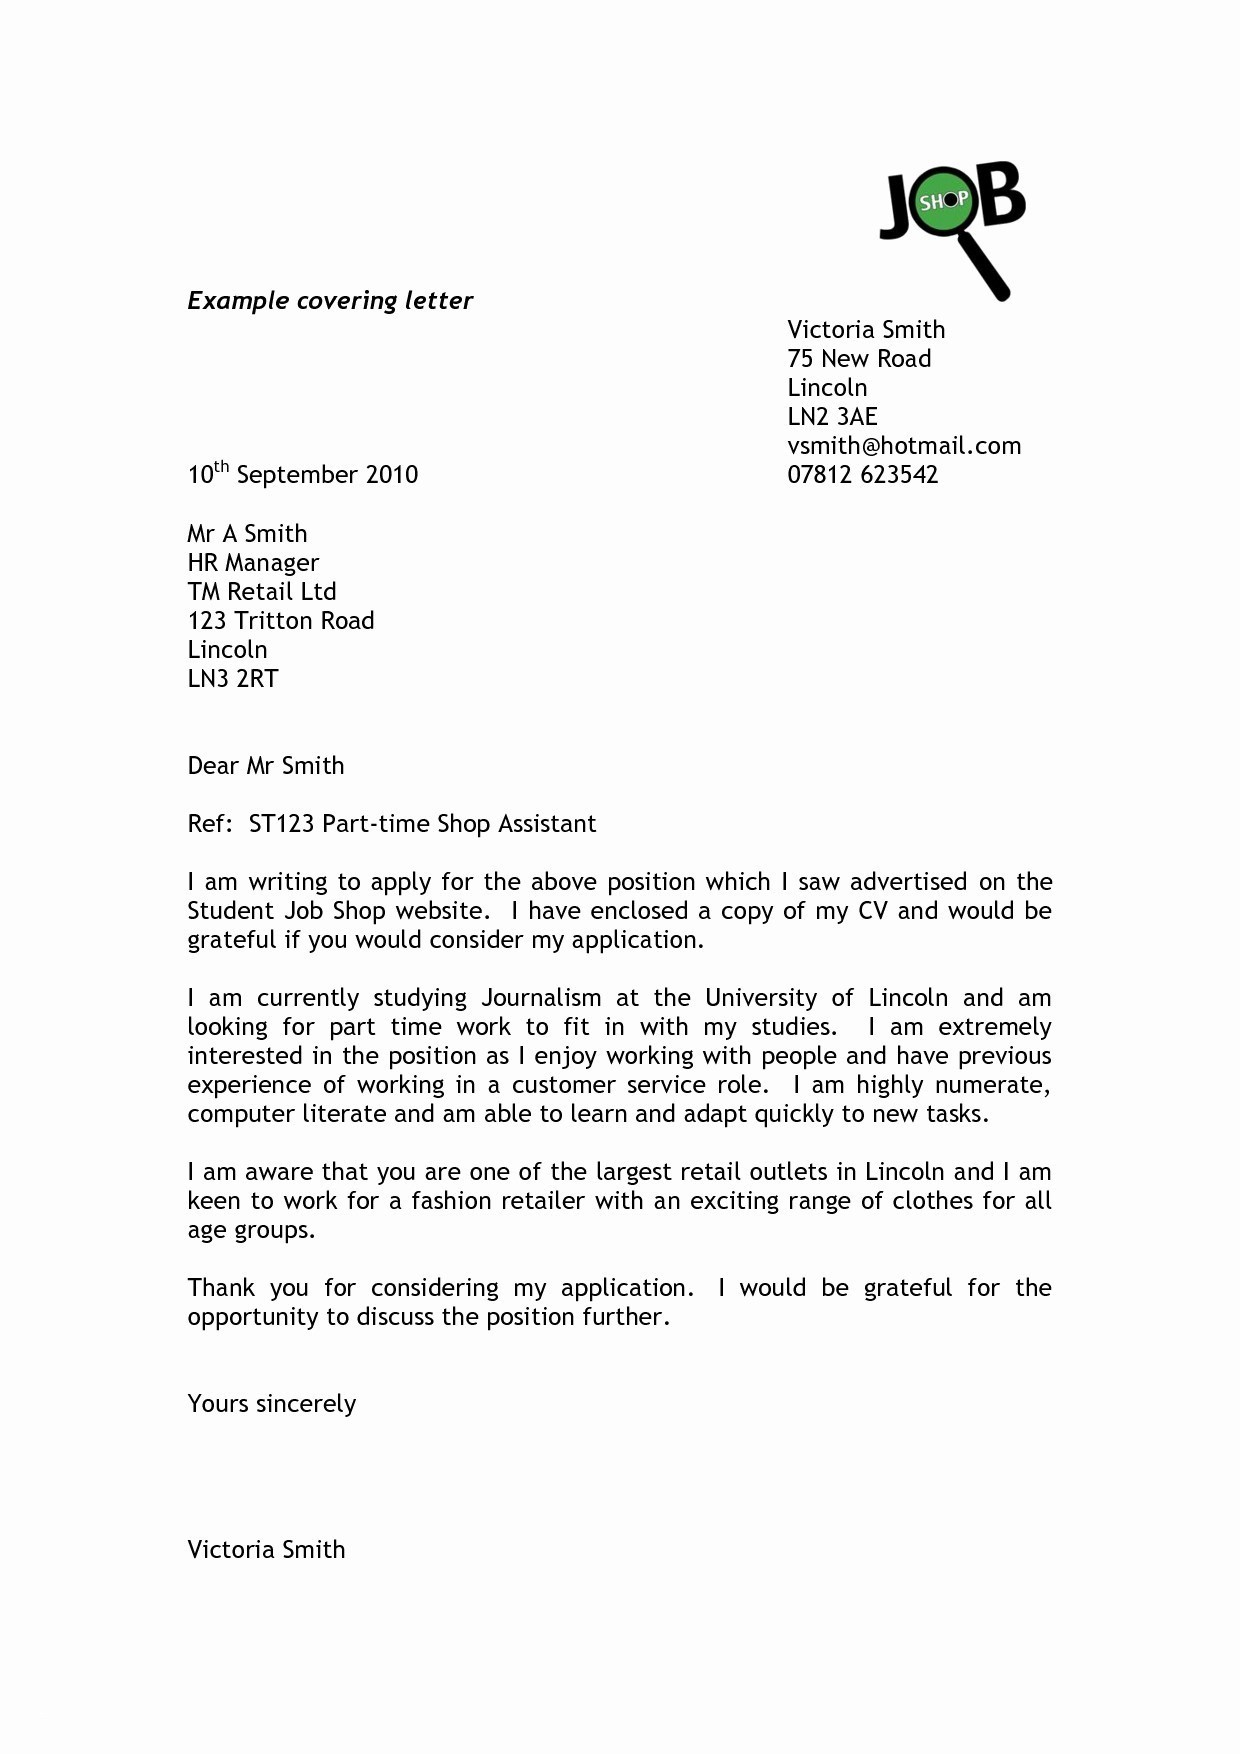 Amazing Cover Letter Template - Job Application Letter format Template Copy Cover Letter Template Hr